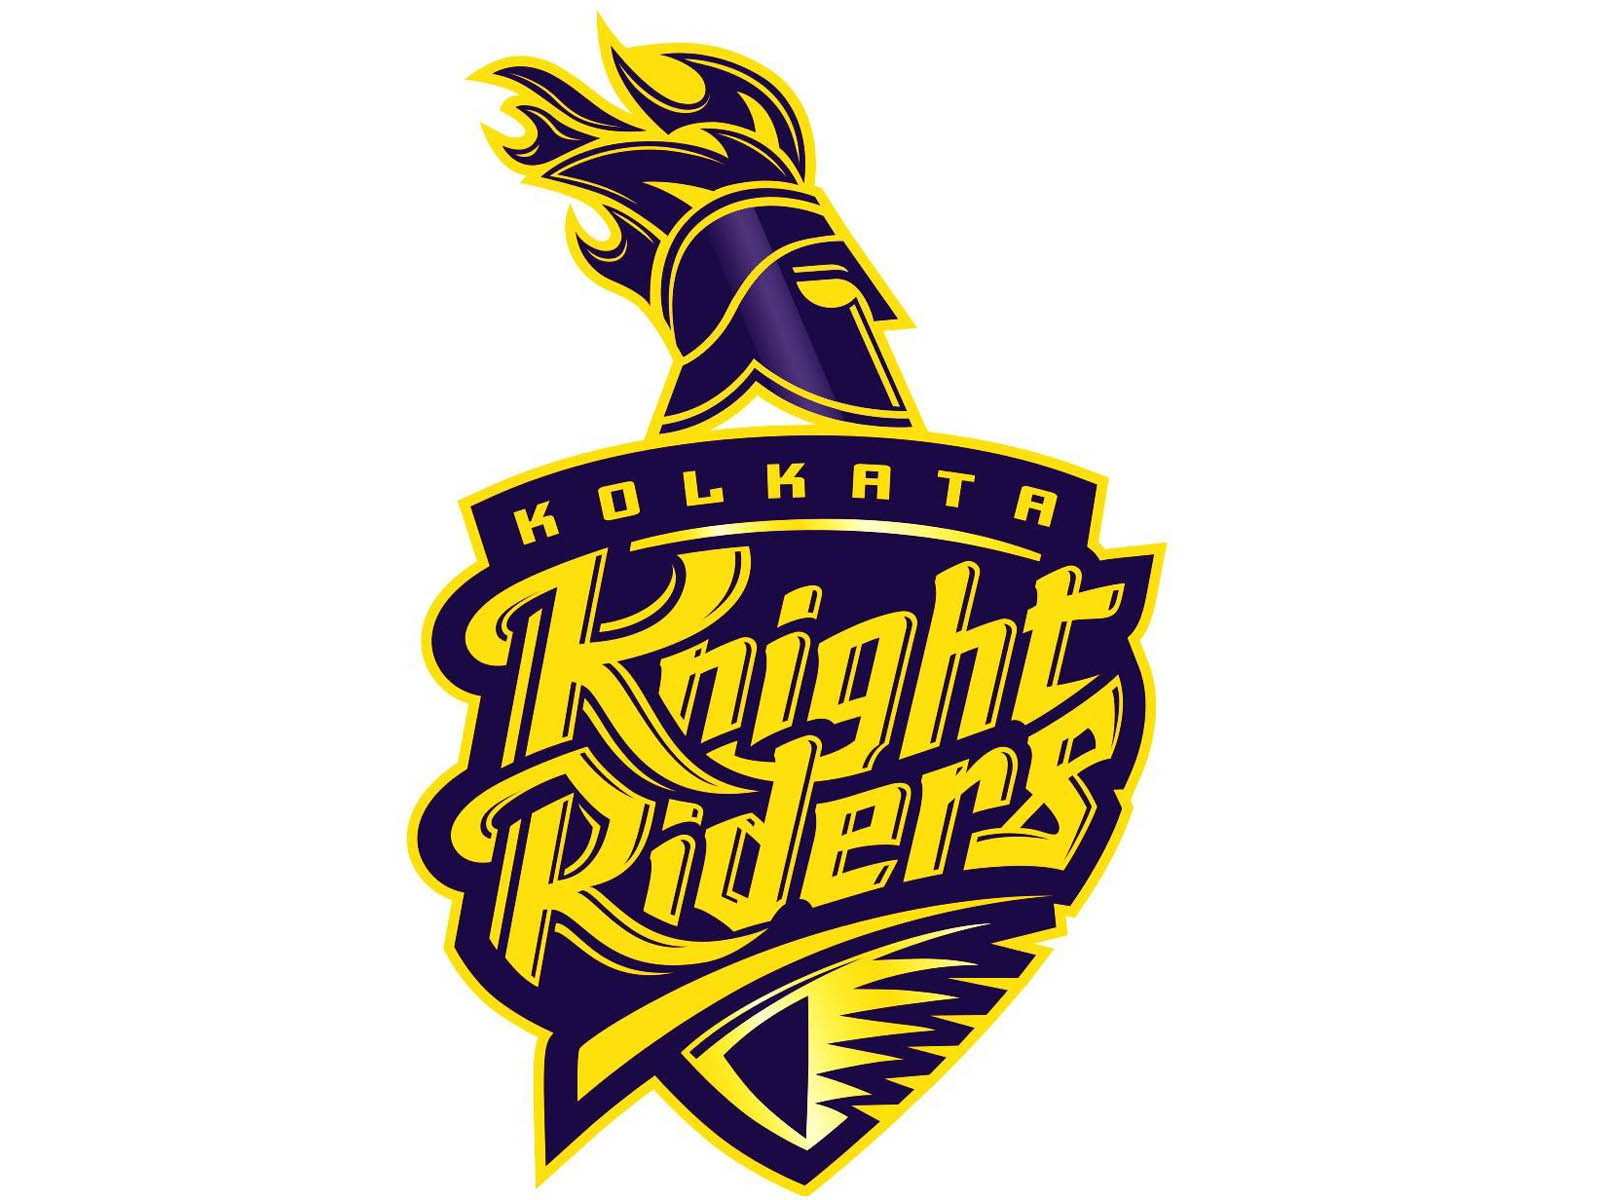 kolkata nightriders